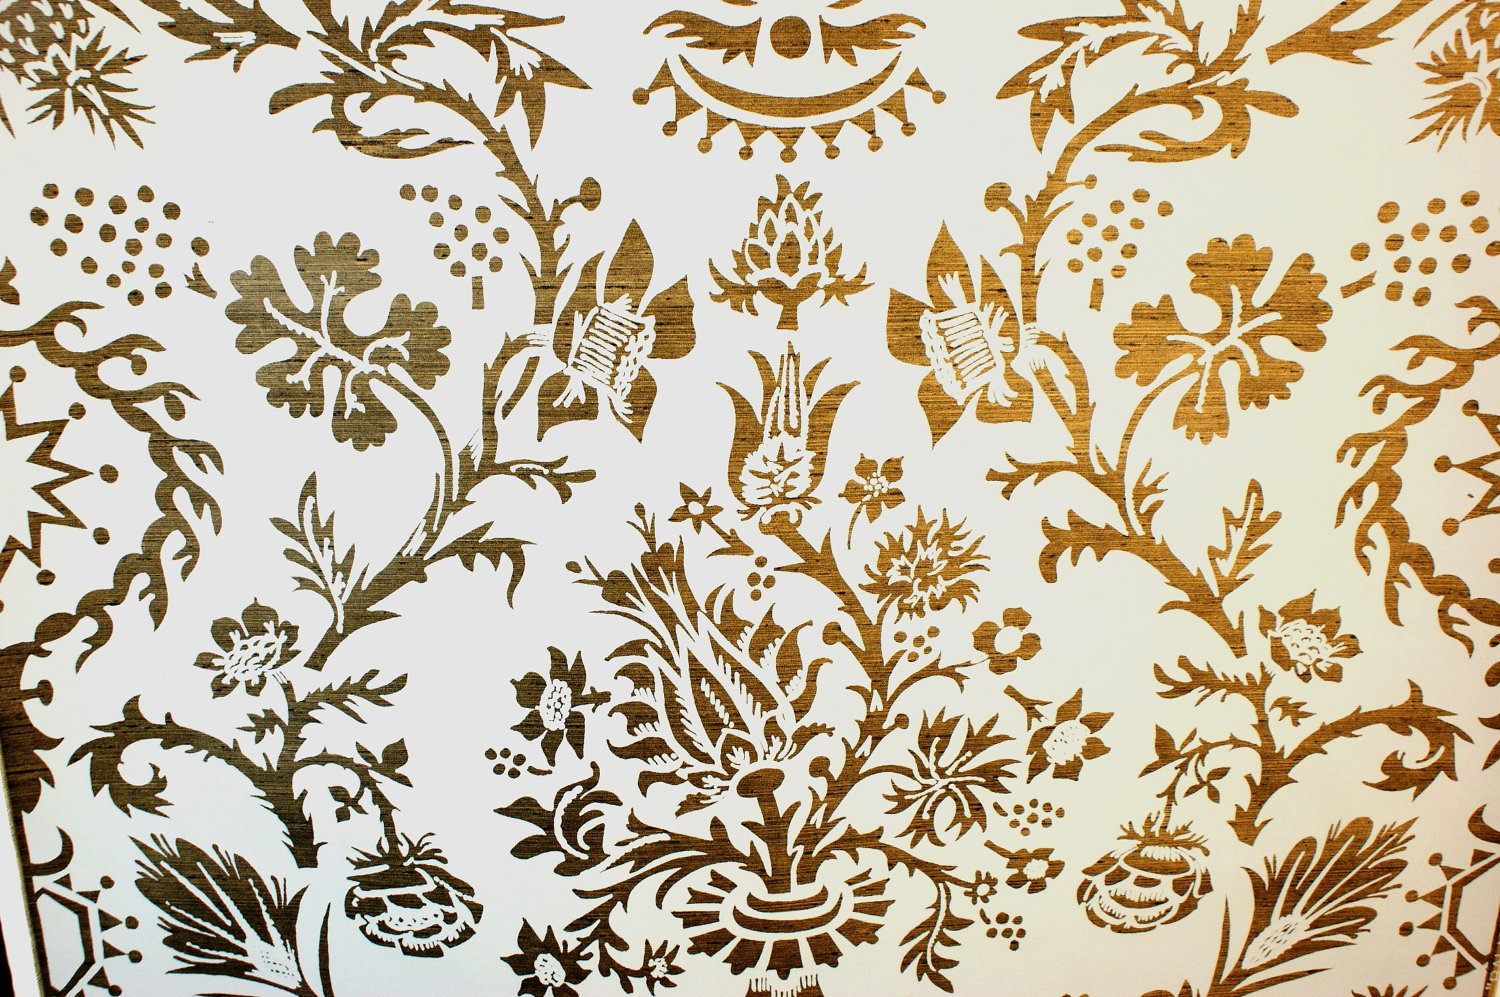 VINTAGE BALMORAL Hand Print Wallpaper Metallic by Sarasotalife 1500x997